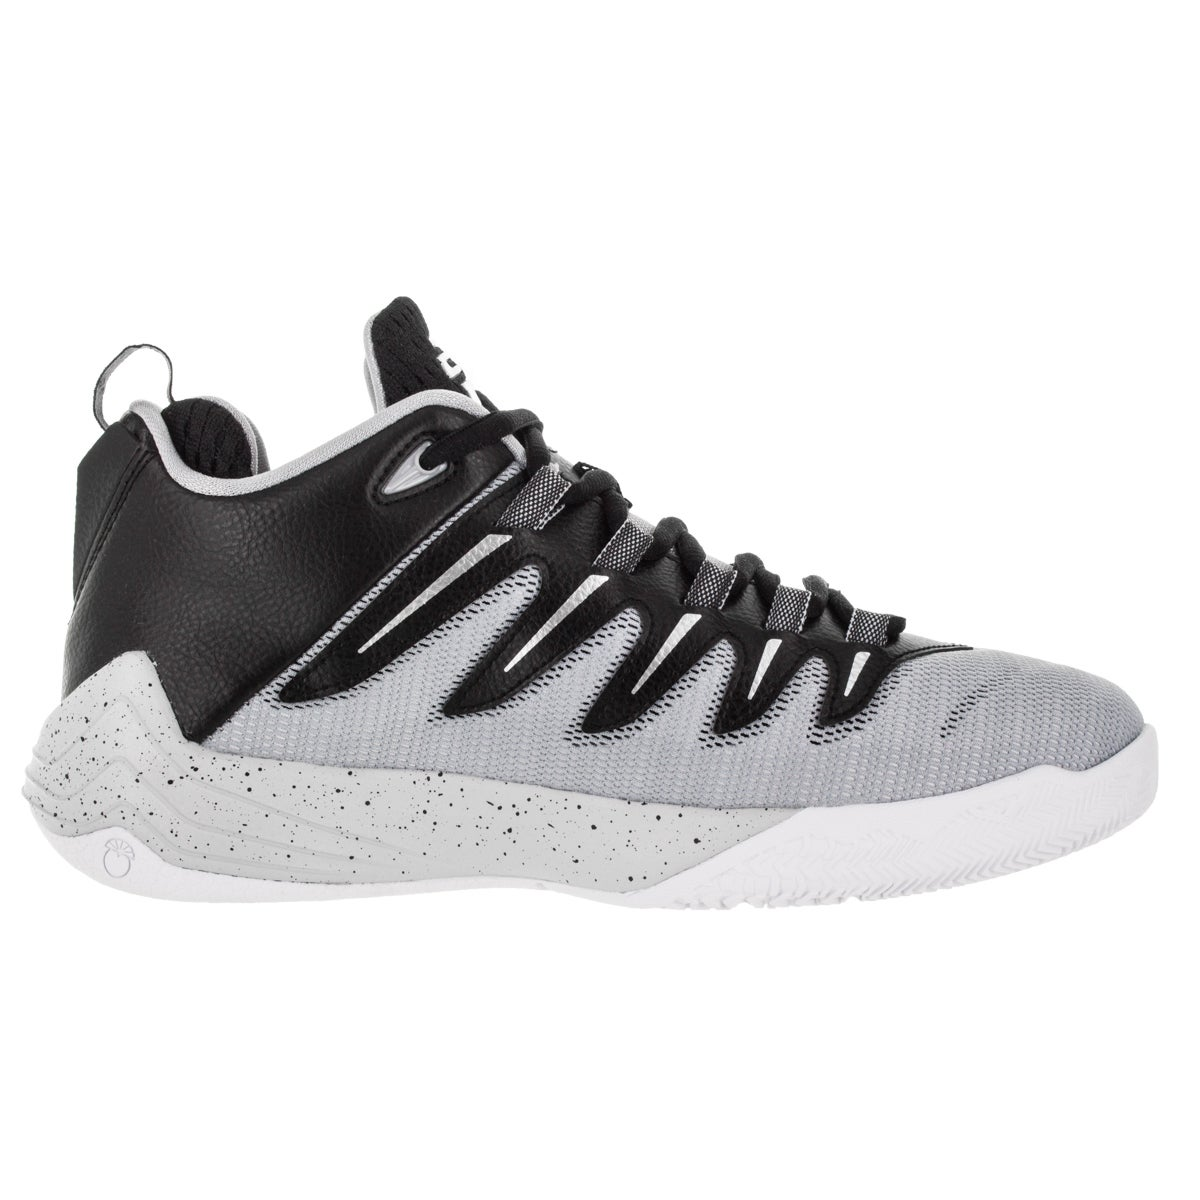 c03f4e82a7b3bb Shop Nike Jordan Kid s Jordan Cp3.Ix Black Metallic Silver Elf  Pr Plt Basketball  Shoe - Free Shipping Today - Overstock - 12322409